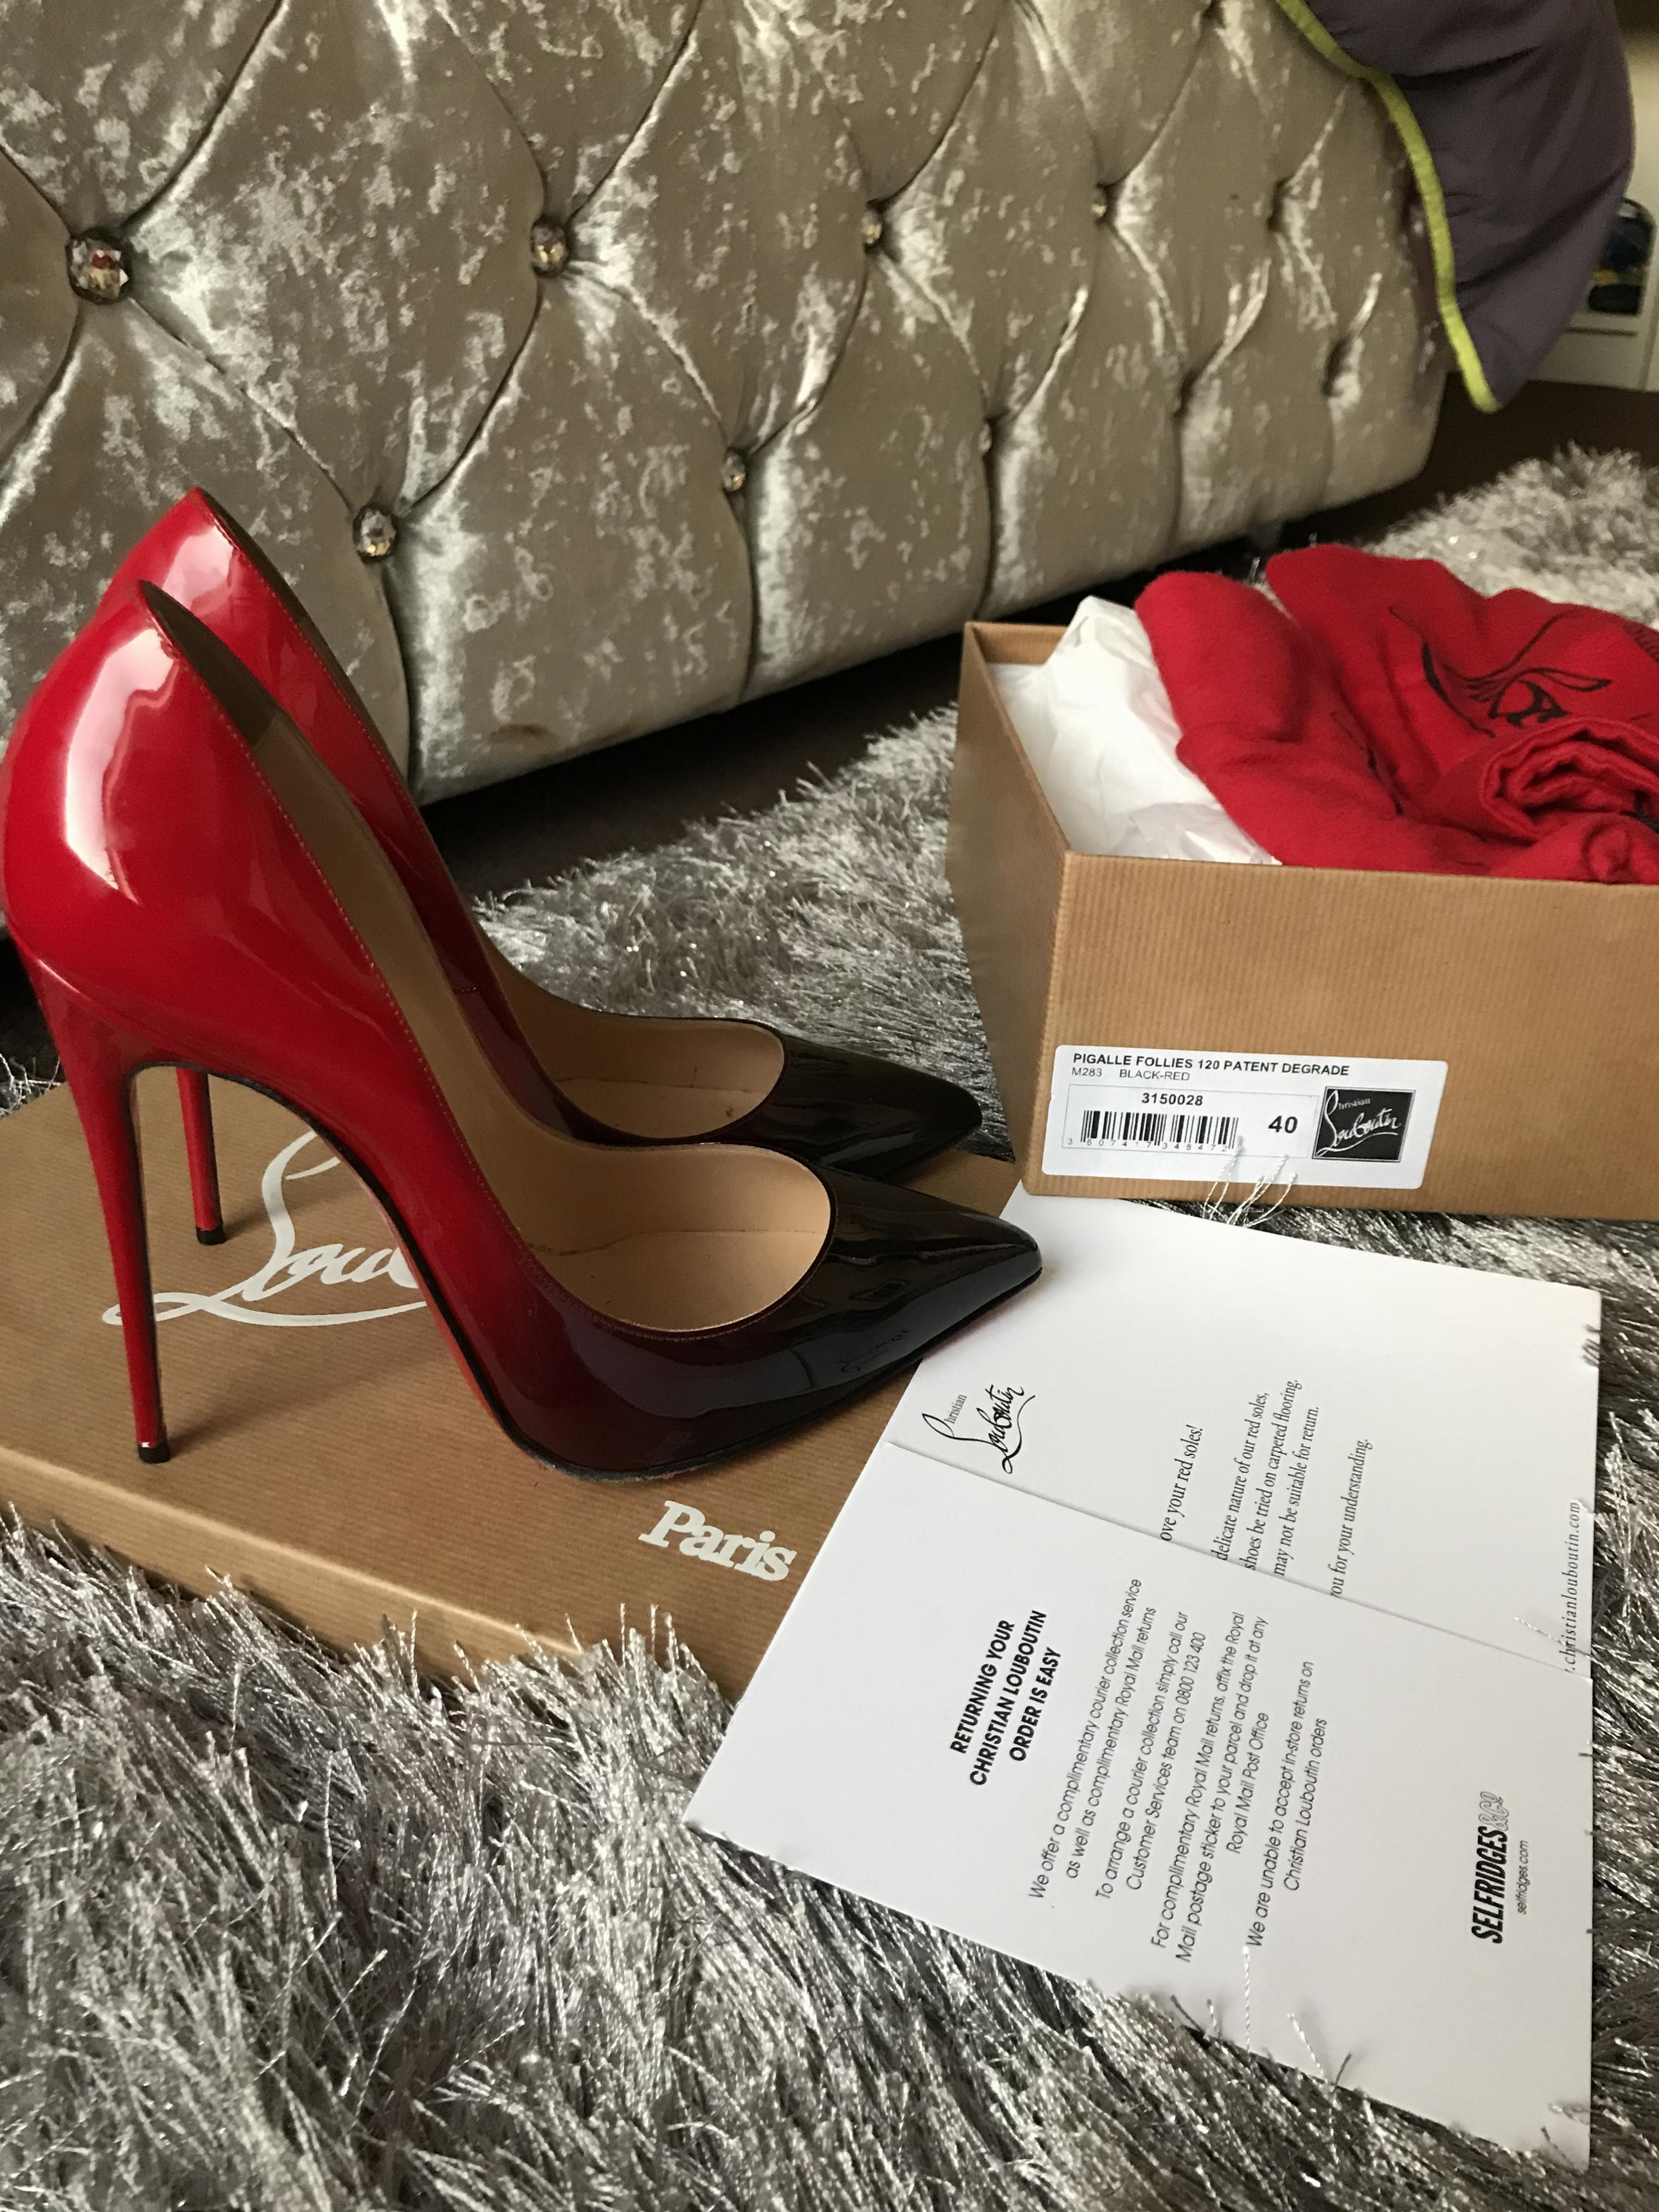 new product 5d288 f8235 Christian Louboutin 120 Patent Degrade Pigalle Follies